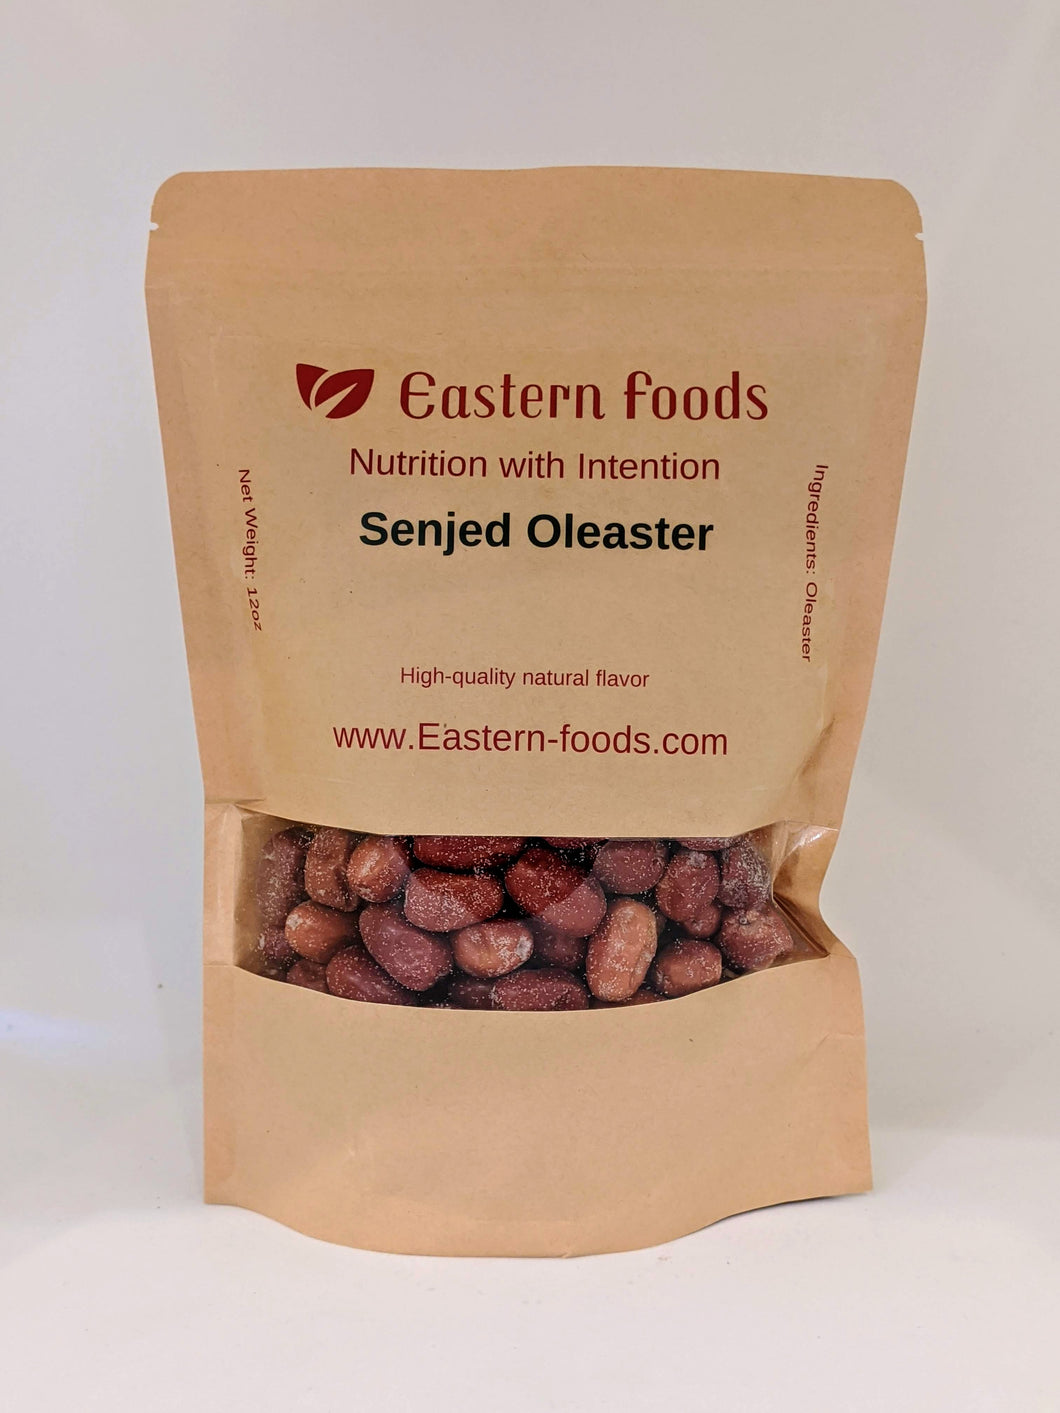 Eastern Foods Senjed Oleaster, 12 oz. Pshat, a.k.a Senjed, Dried Oleaster & Russian Olives